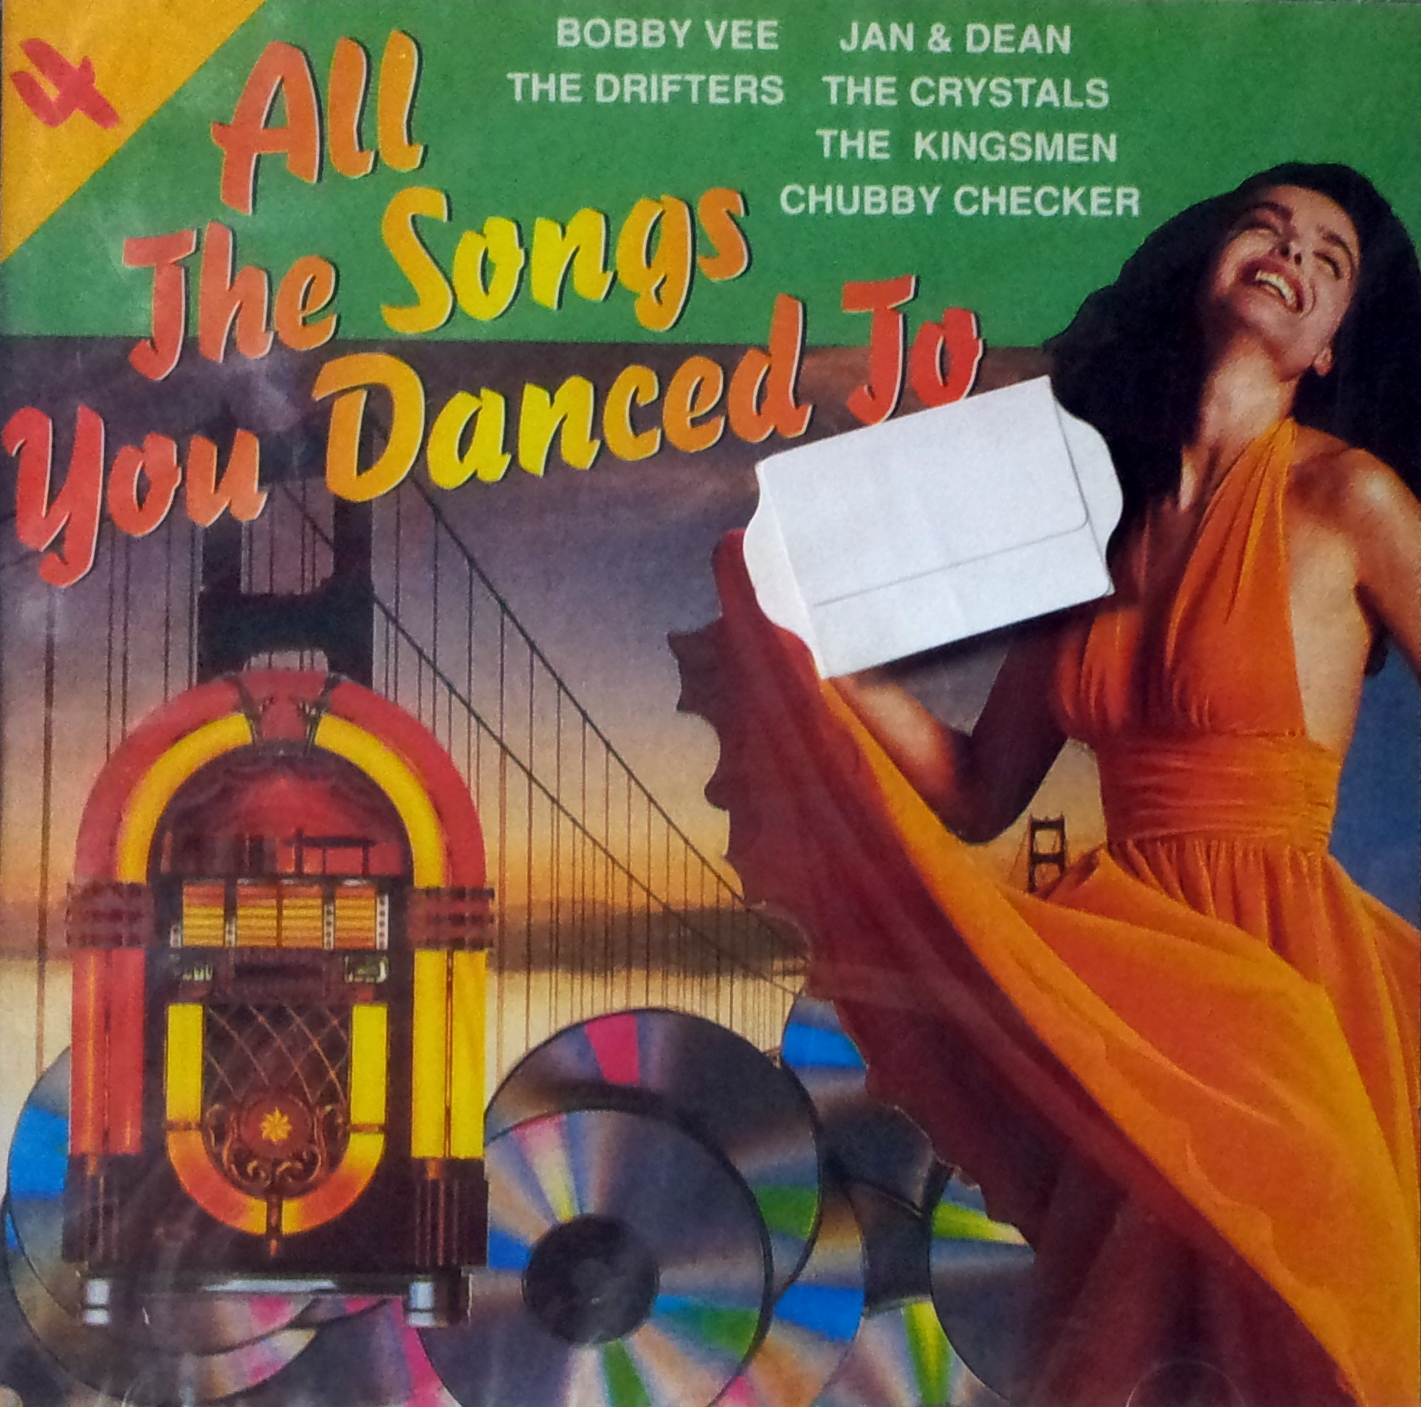 All the songs you danced to Vol. 4